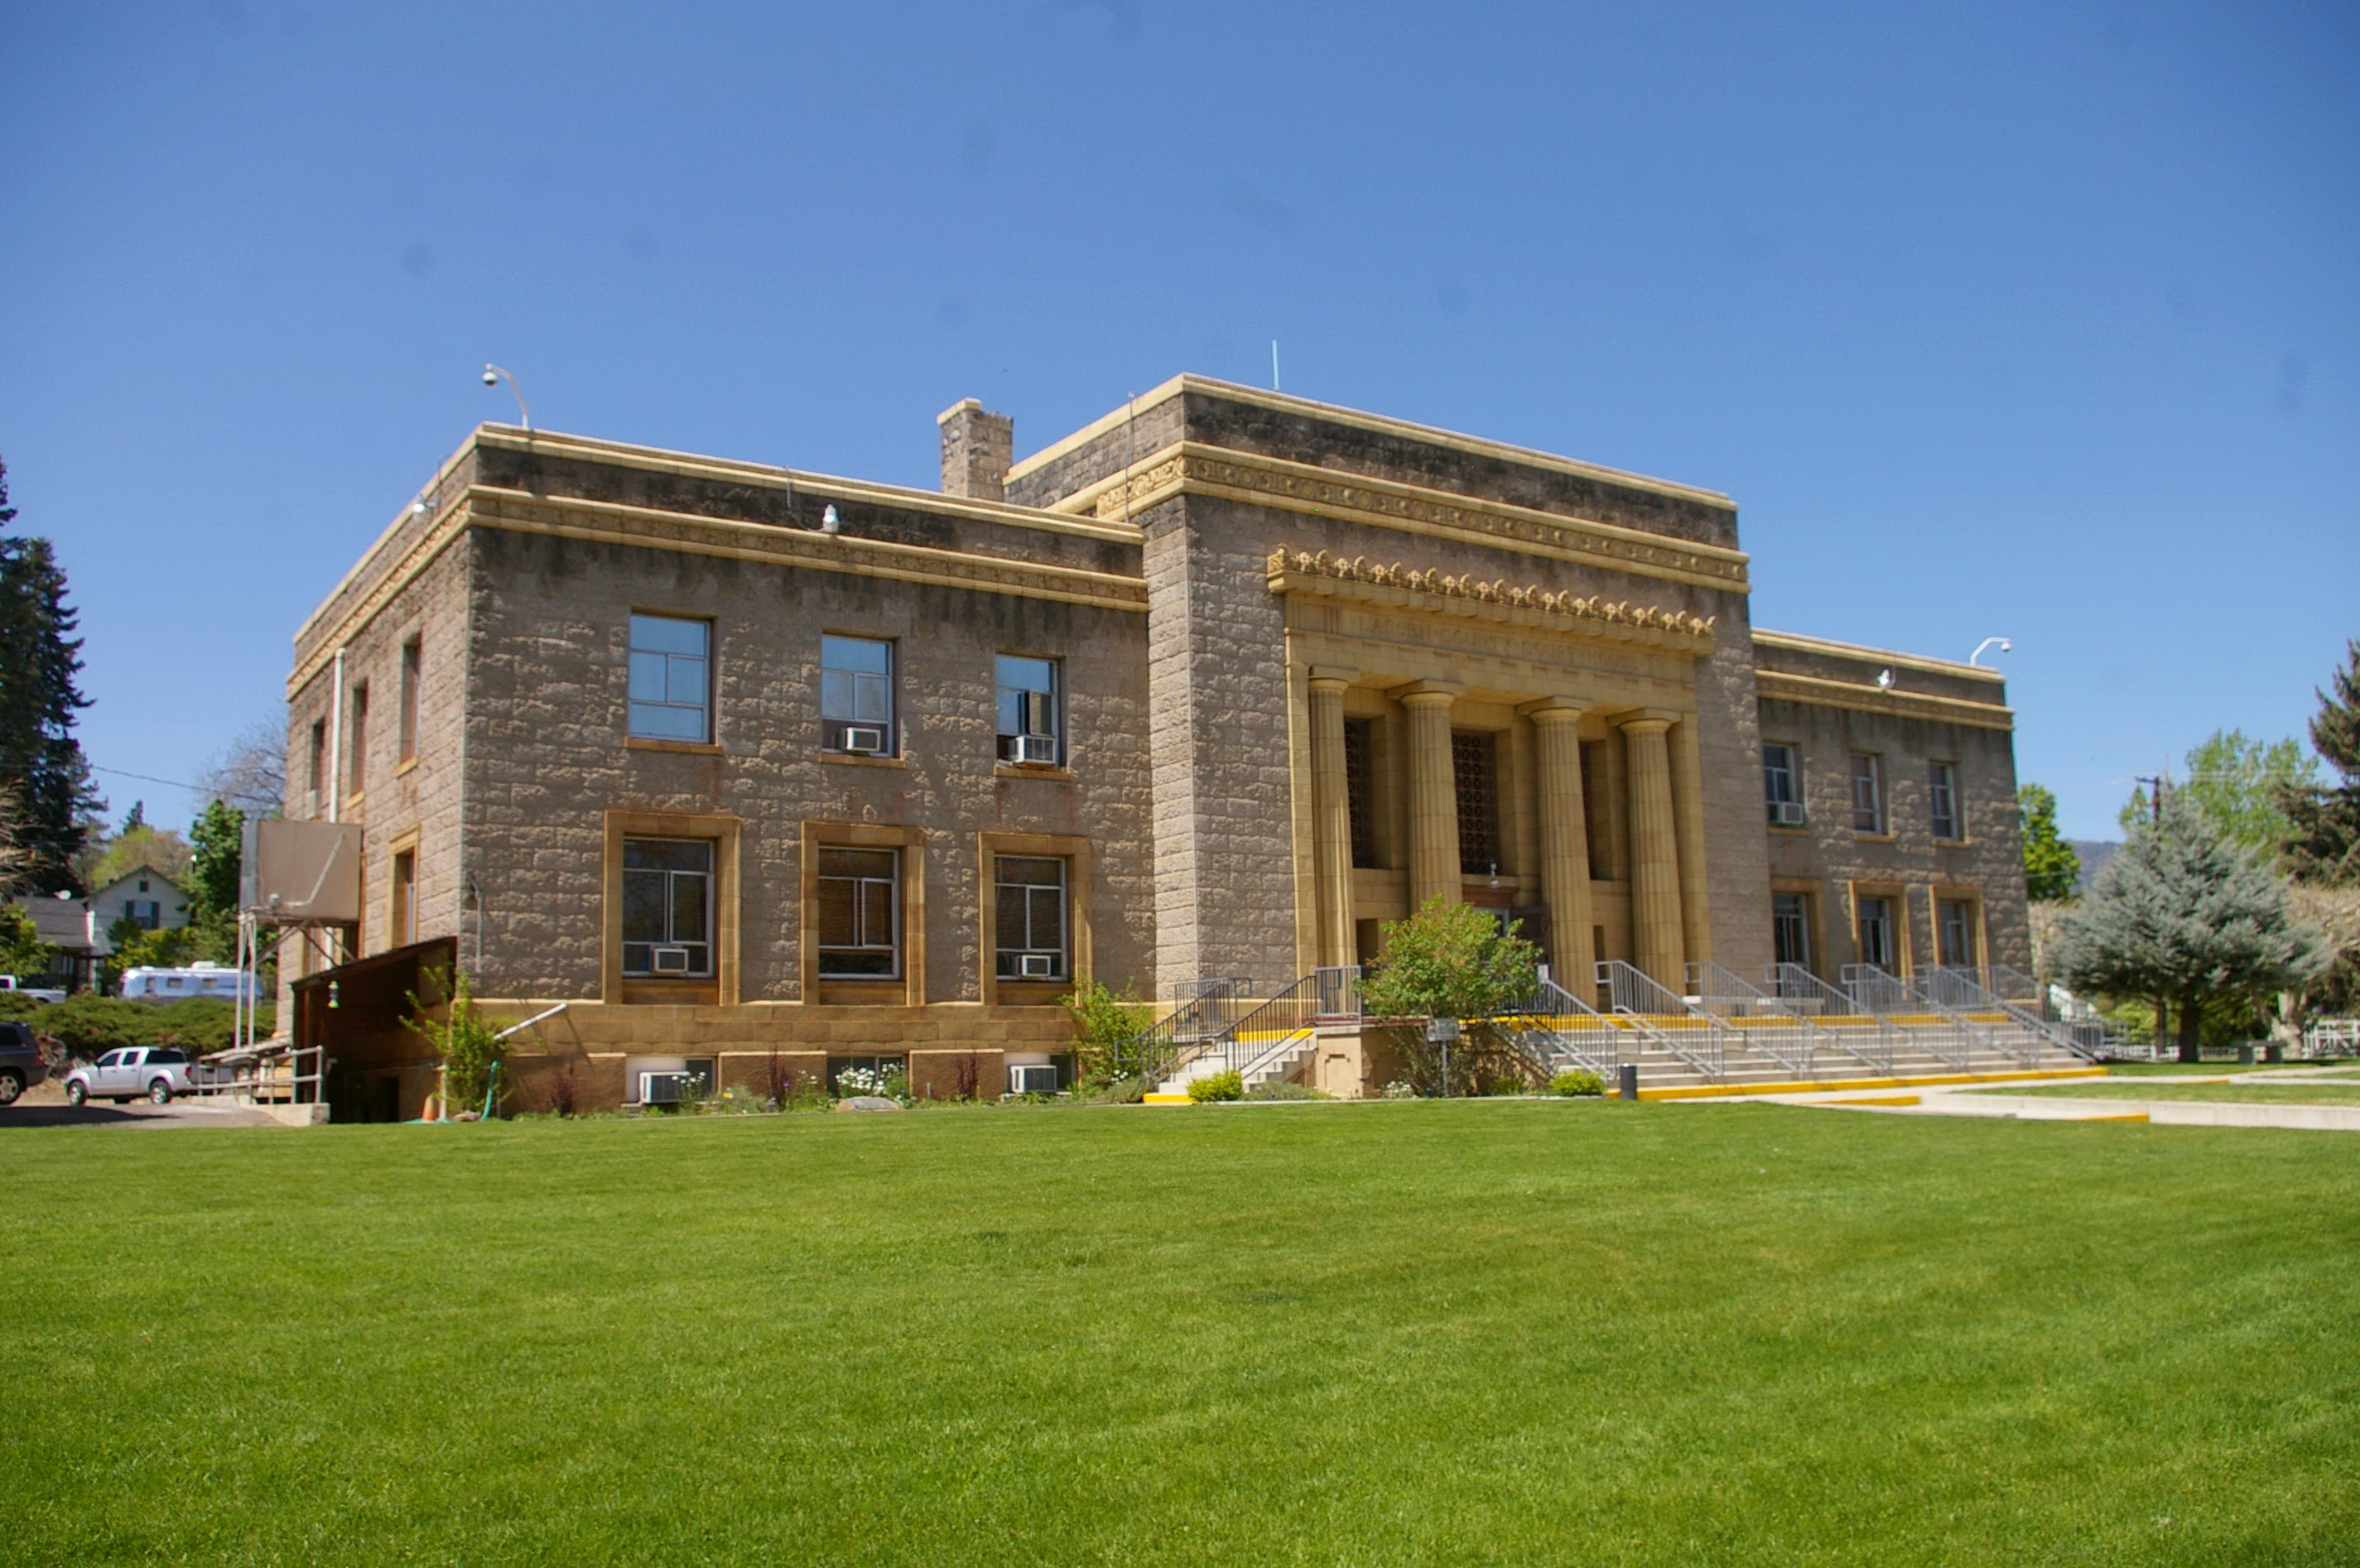 Lassen County Us Courthouses